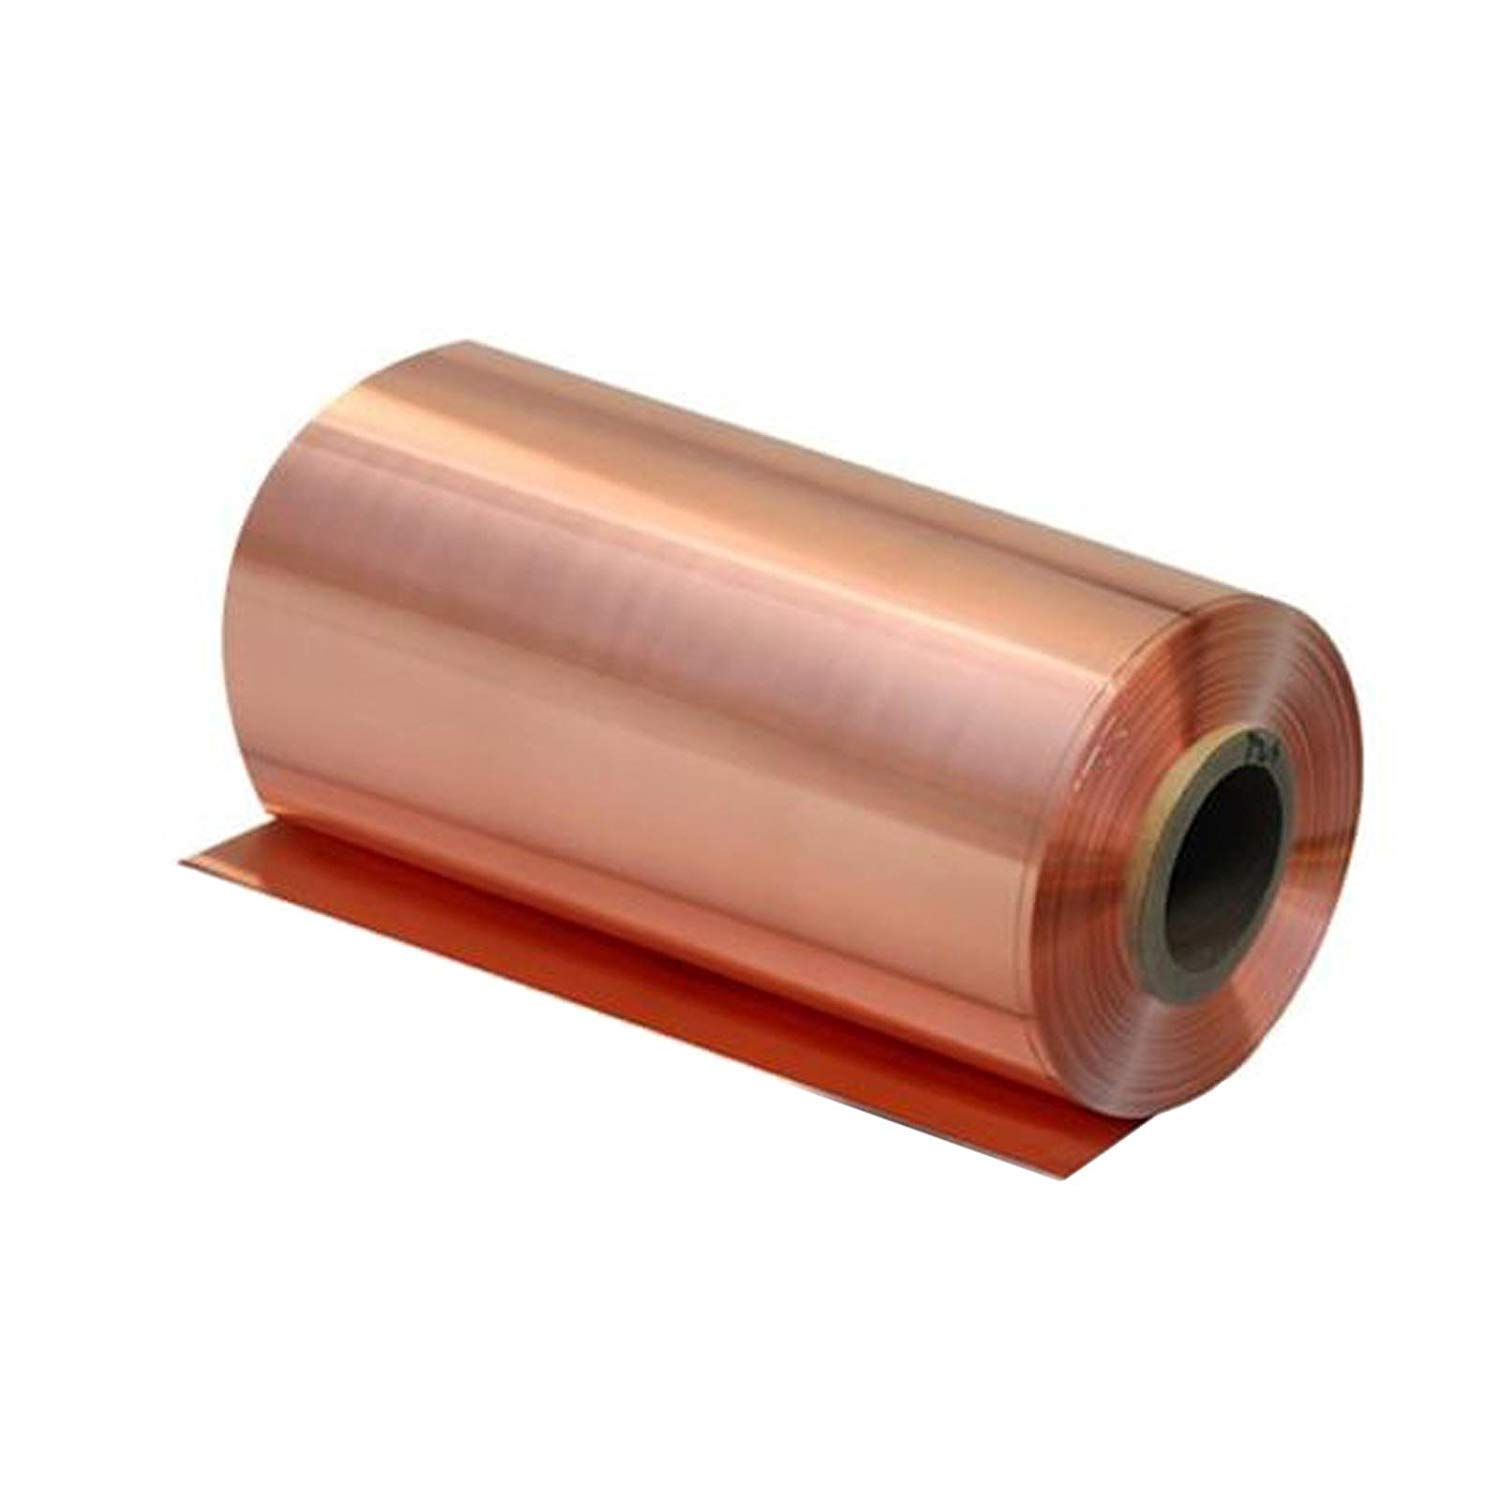 SOFIALXC Pure Copper Sheet Metal Plate Thickness (0.1mm)-Width: 40mm Length: 5000mm by SOFIALXC